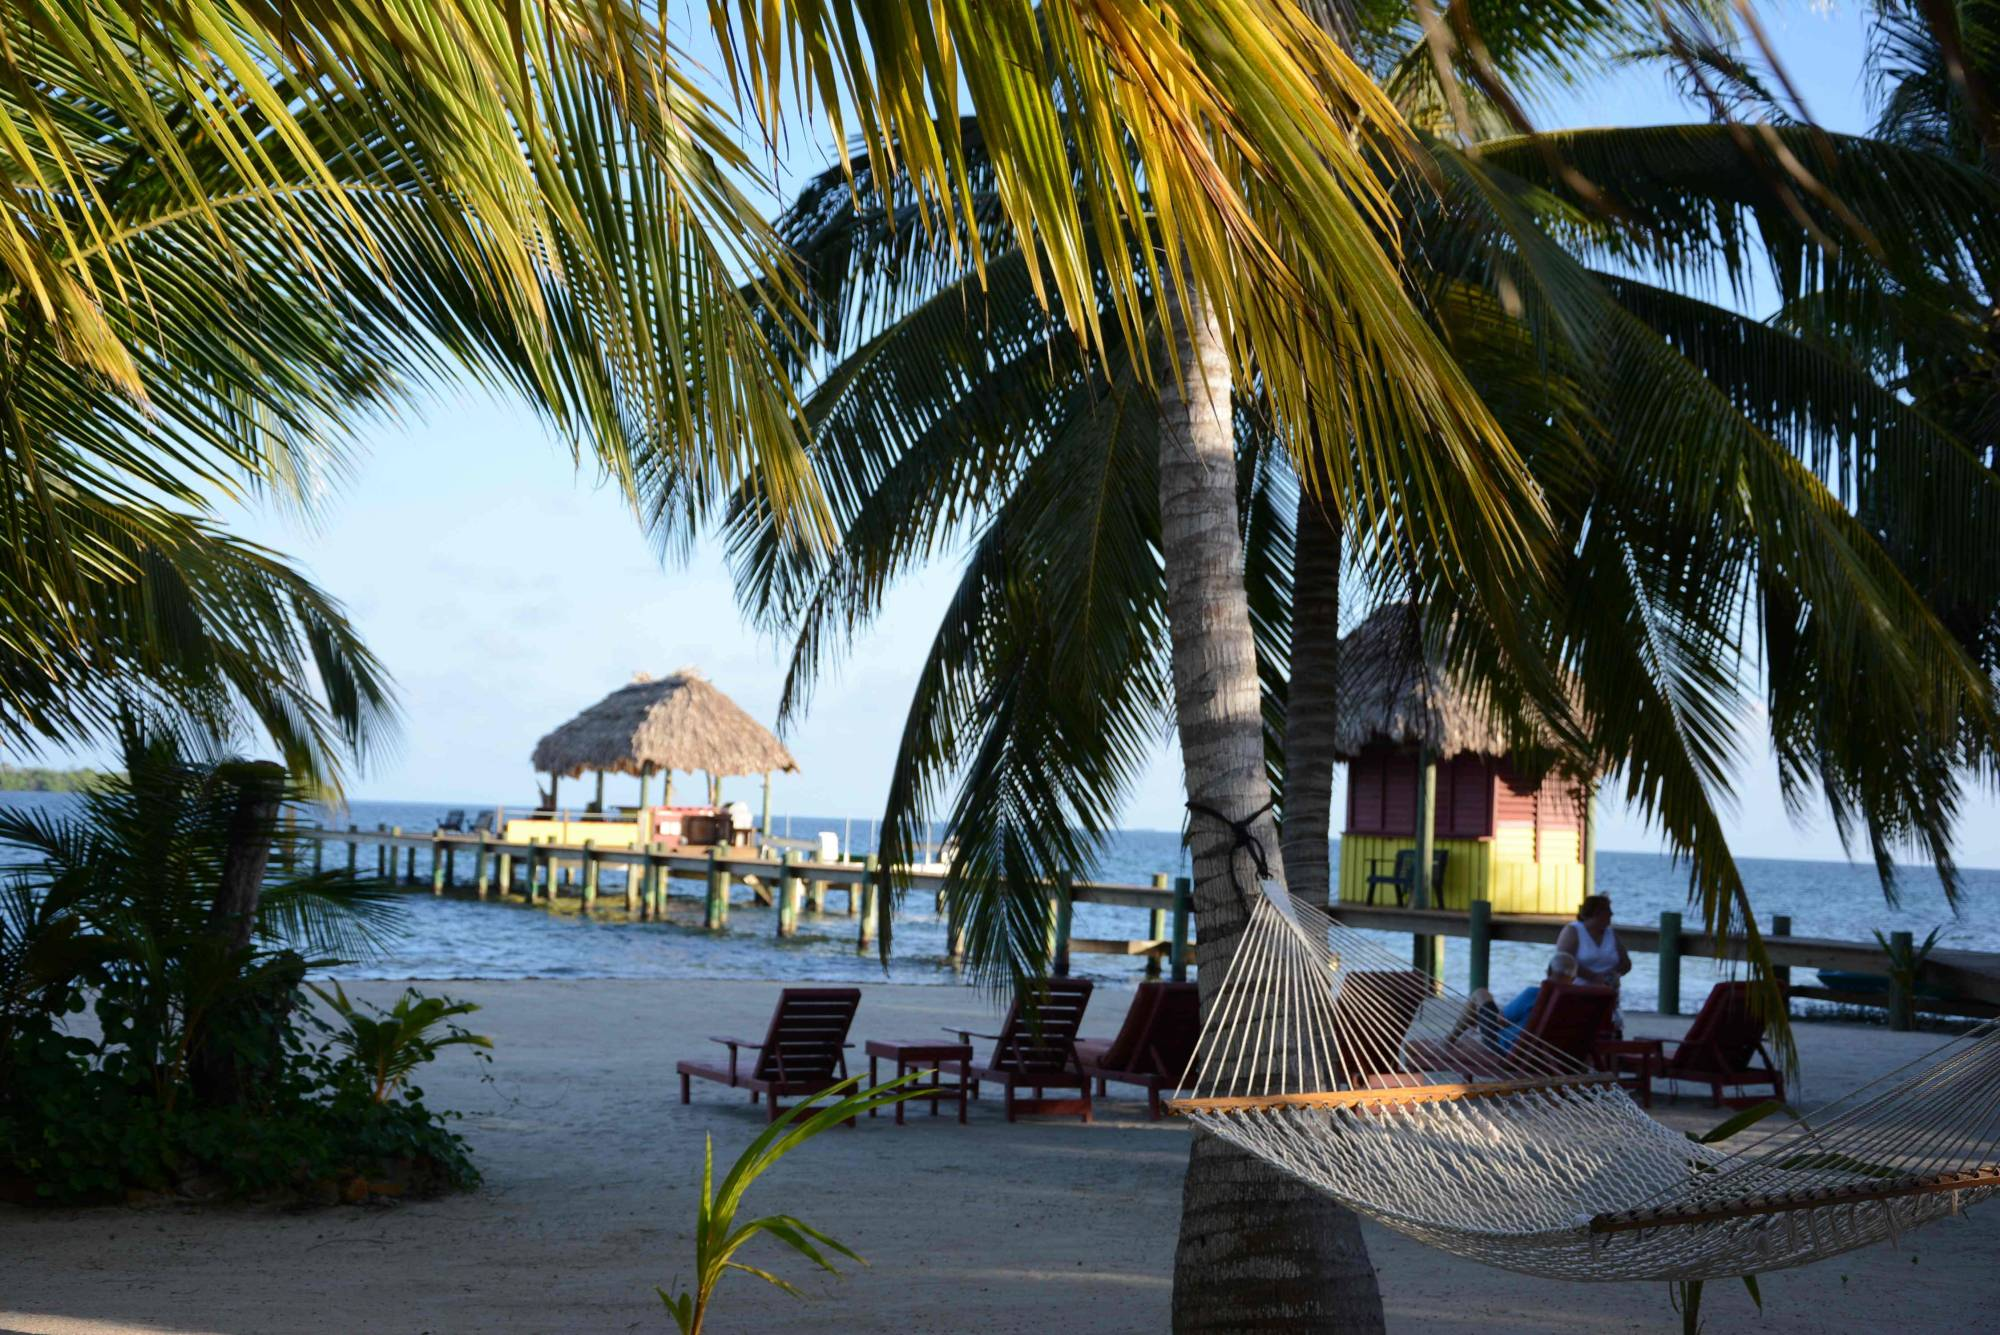 The beach at Singing Sands Resort, Belize